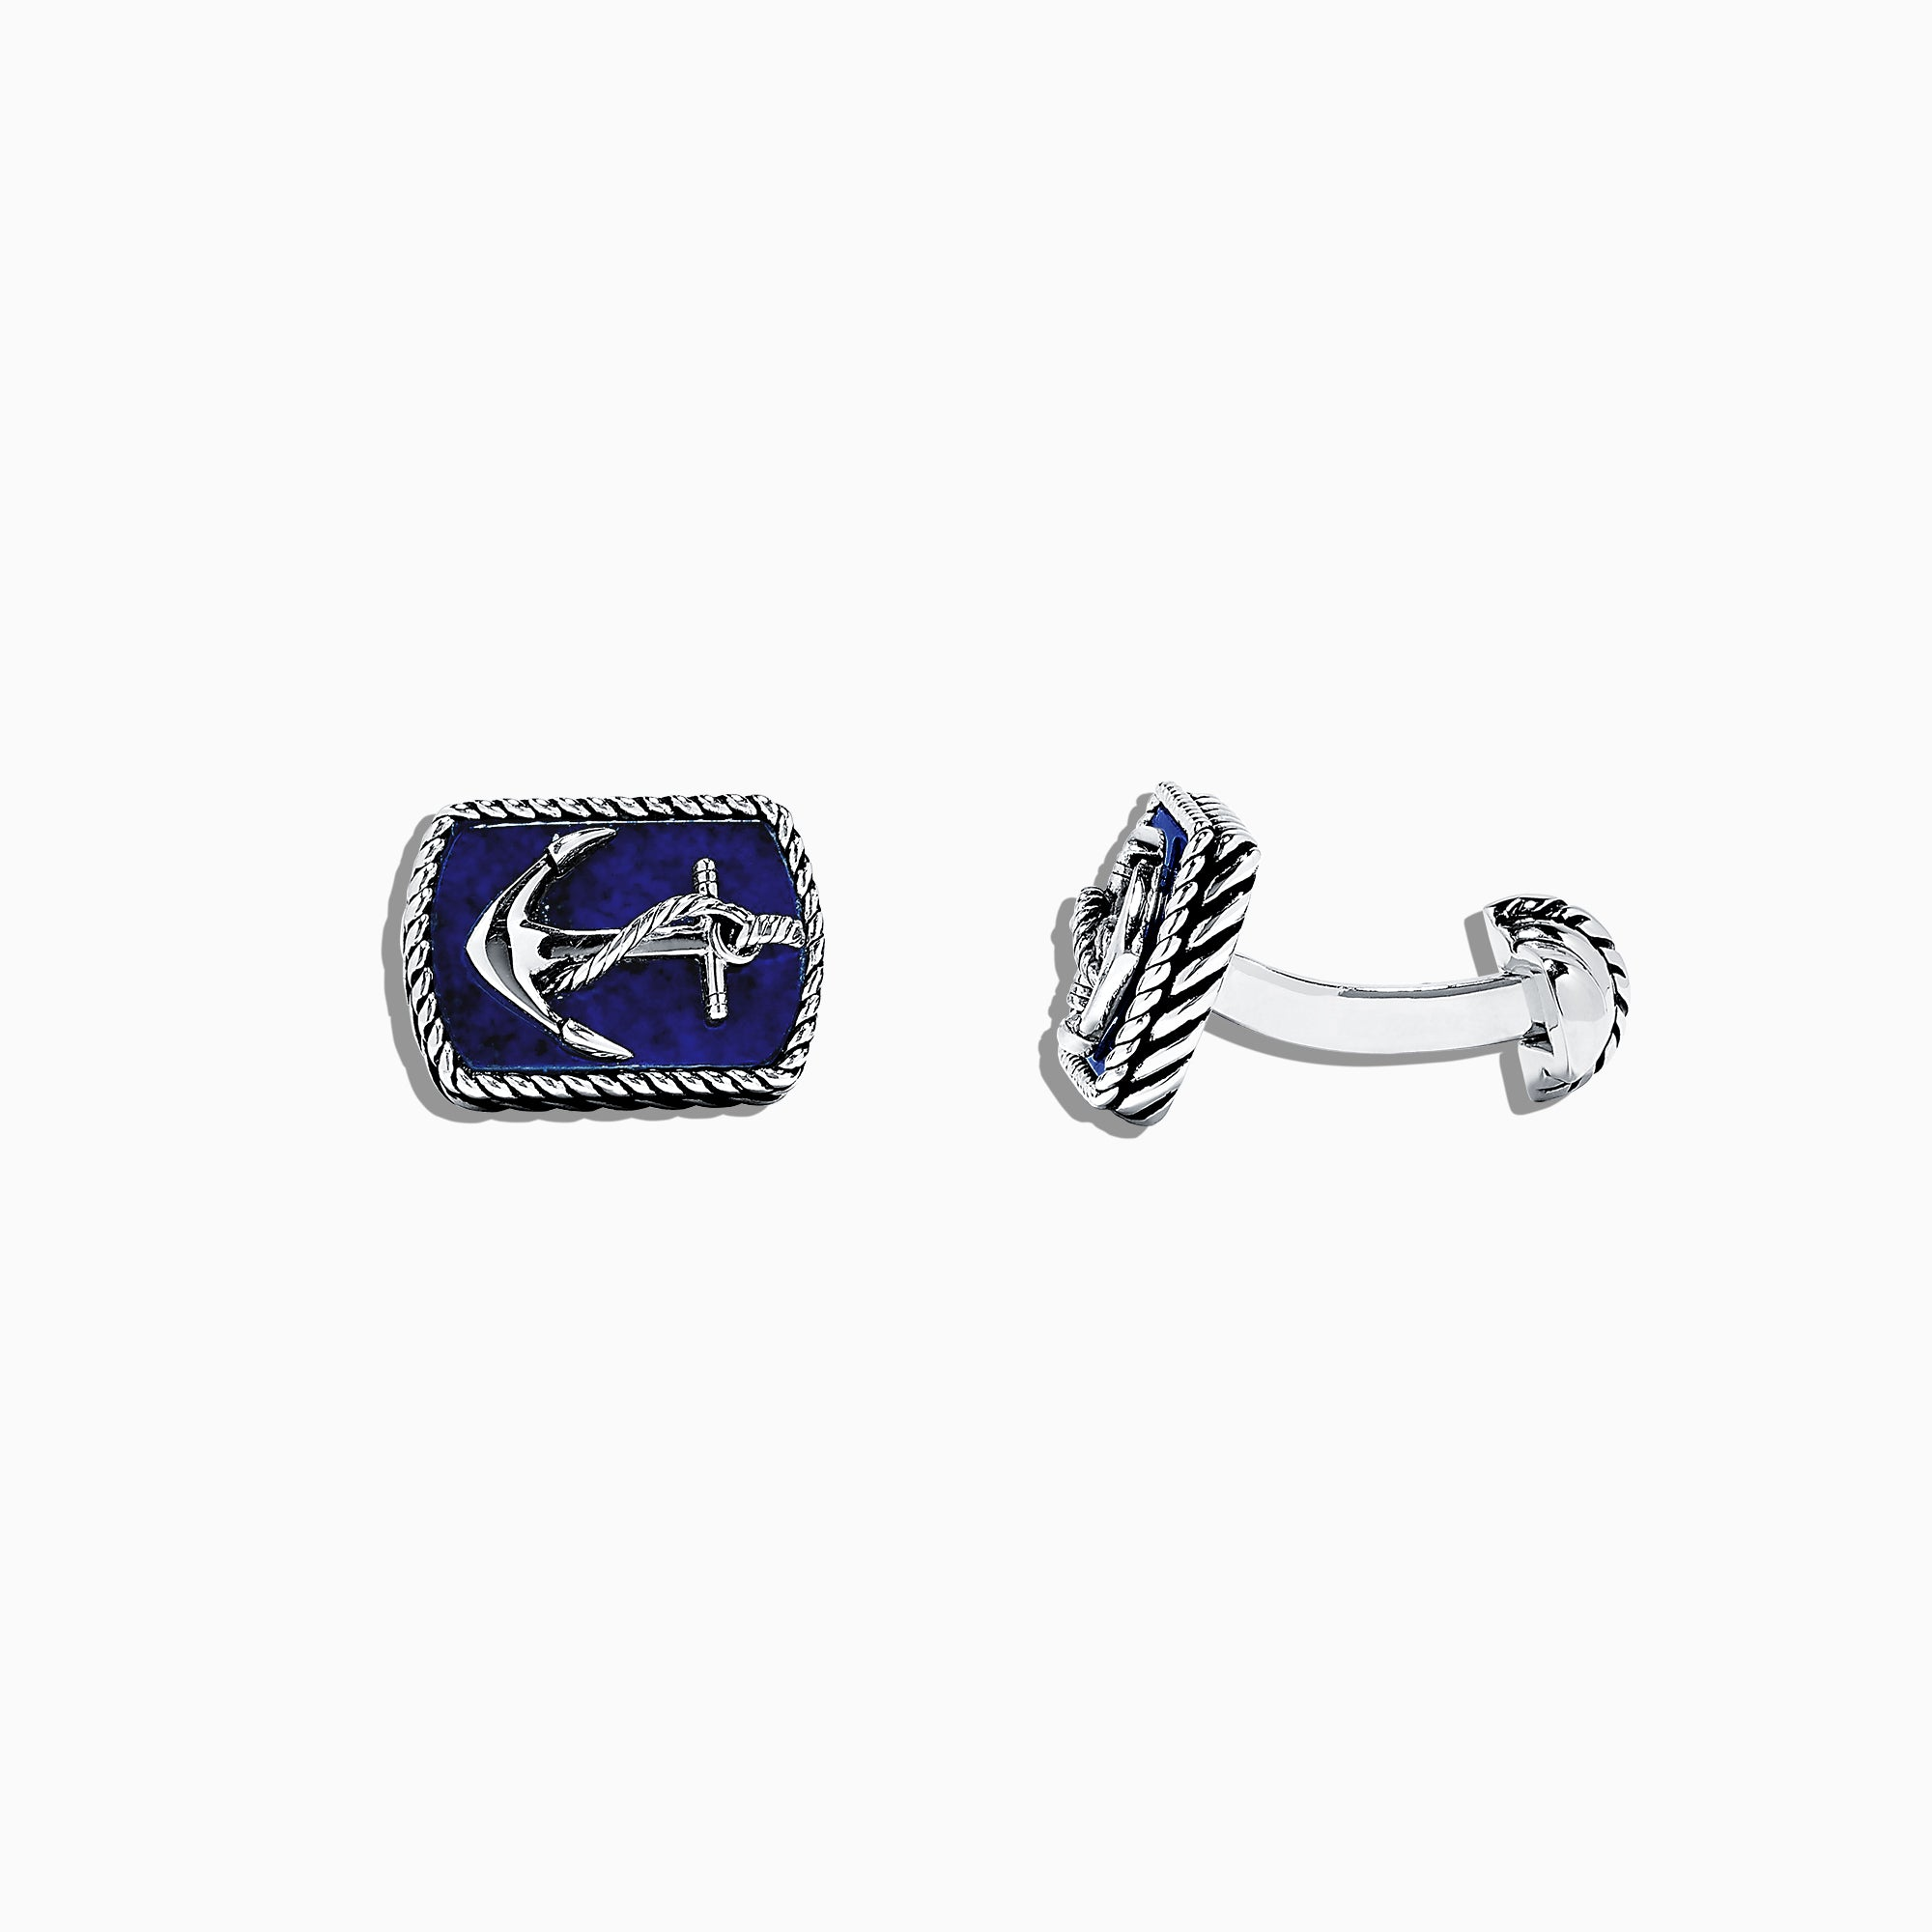 Effy Men's 925 Sterling Silver Lapis Lazuli Anchor Cufflinks, 9.85 TCW